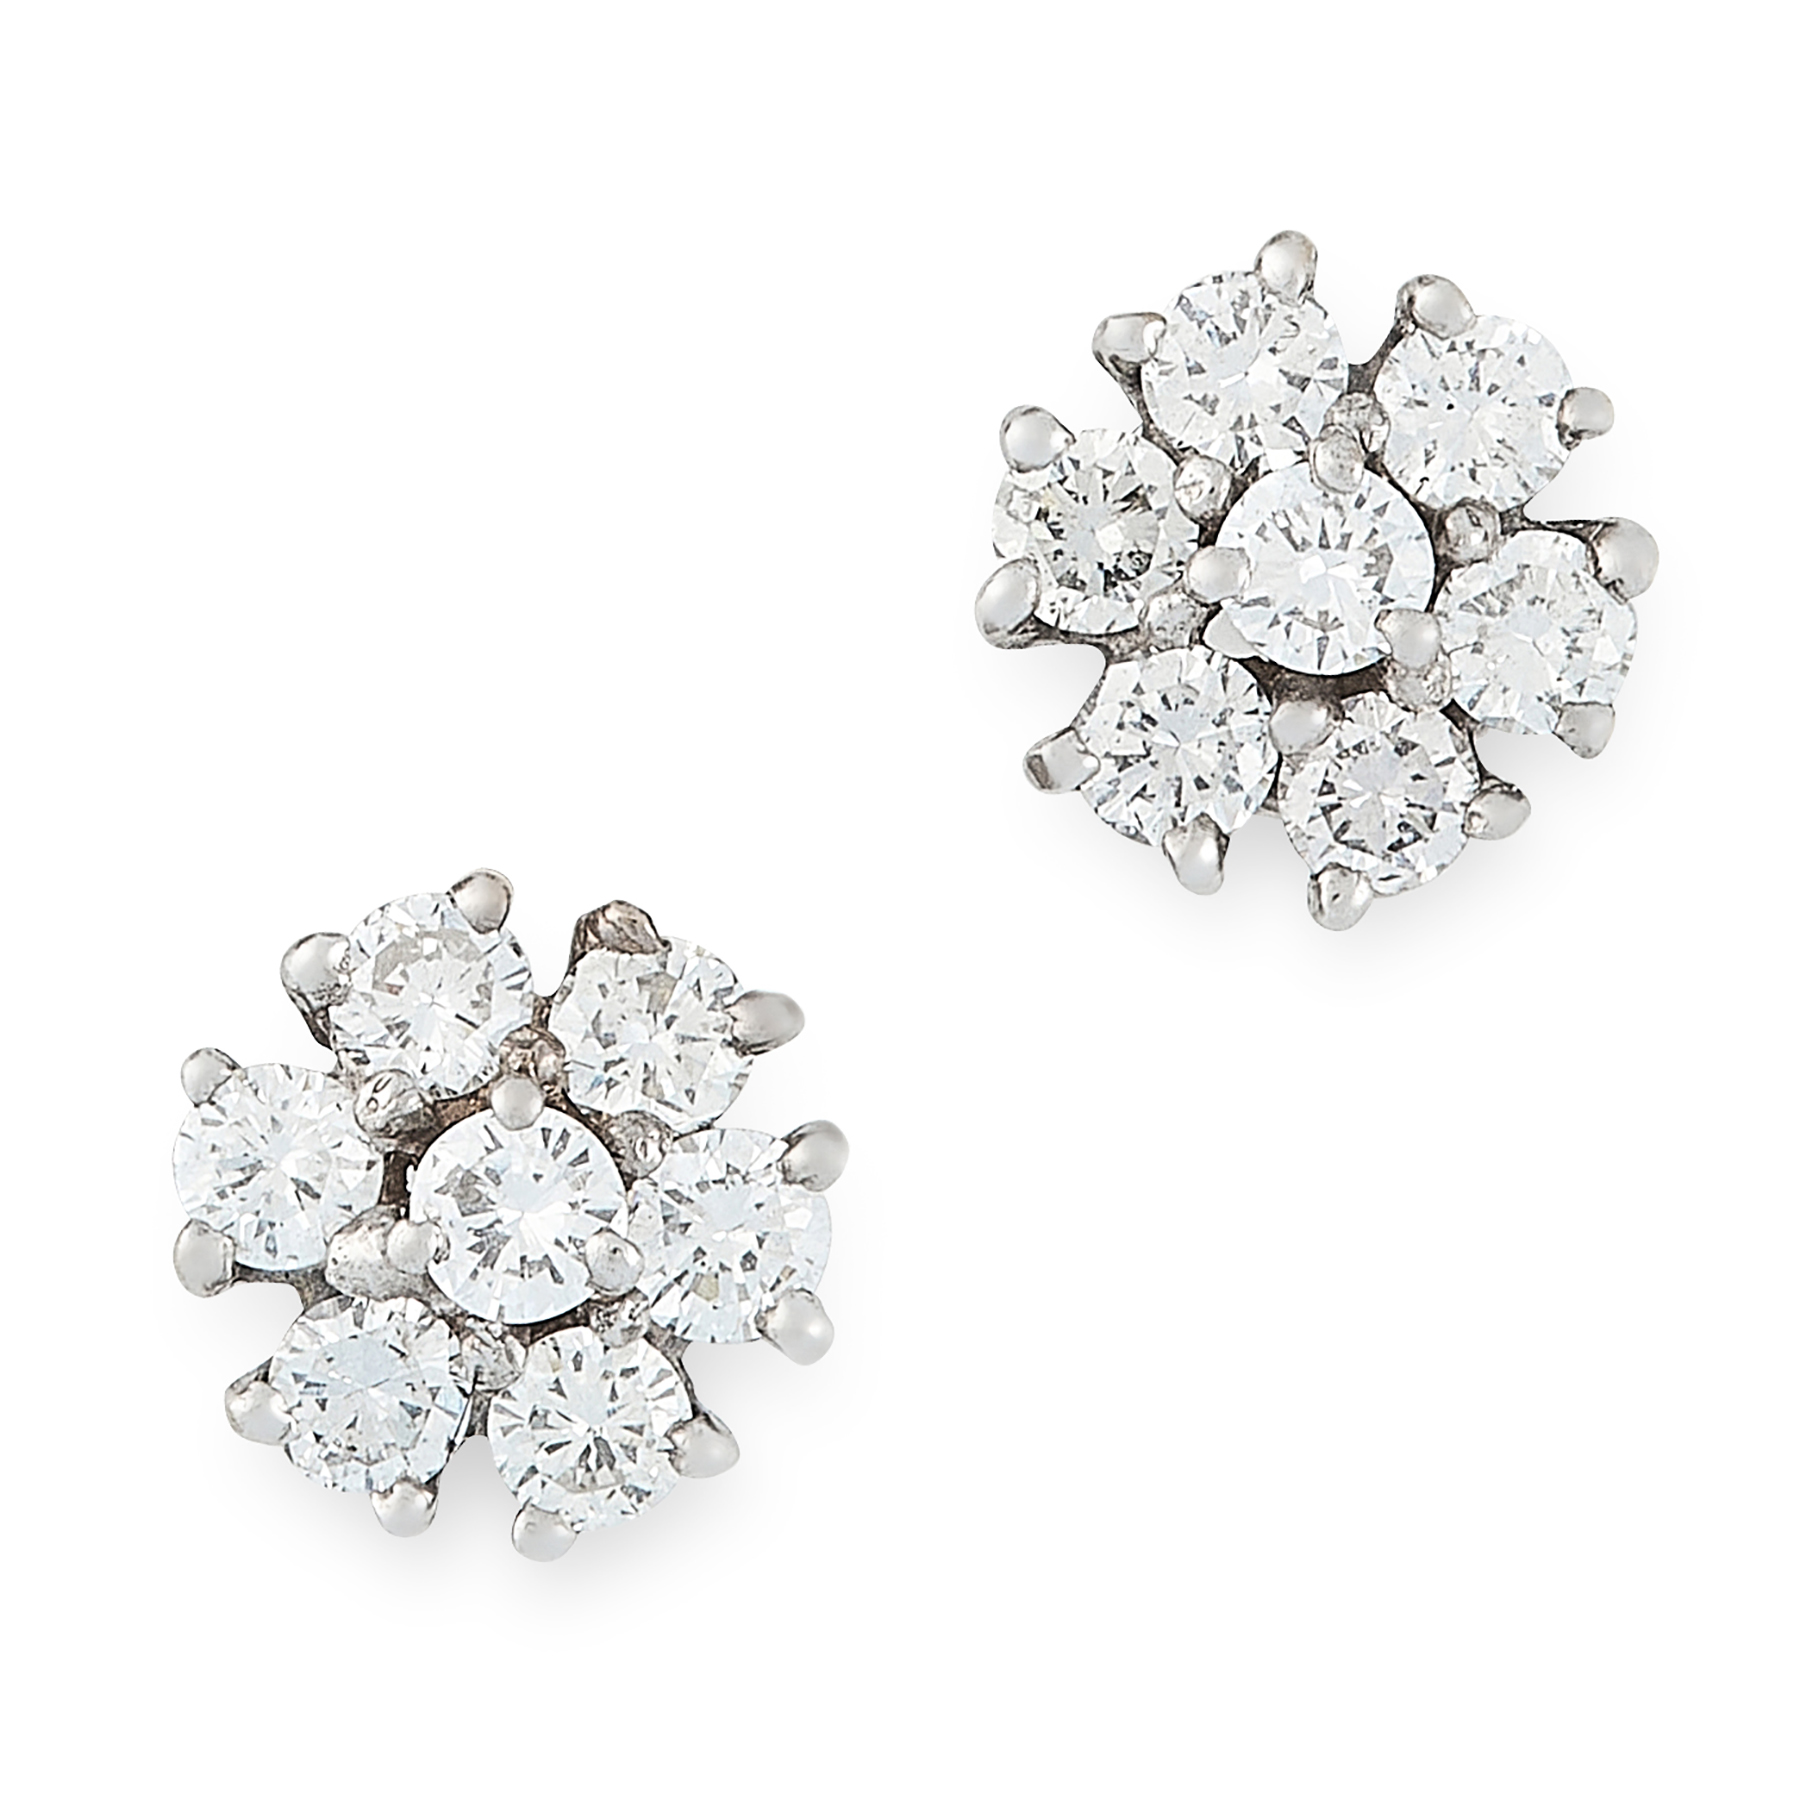 A PAIR OF DIAMOND STUD EARRINGS each set with a cluster of round cut diamonds, totalling 1.0-1.2